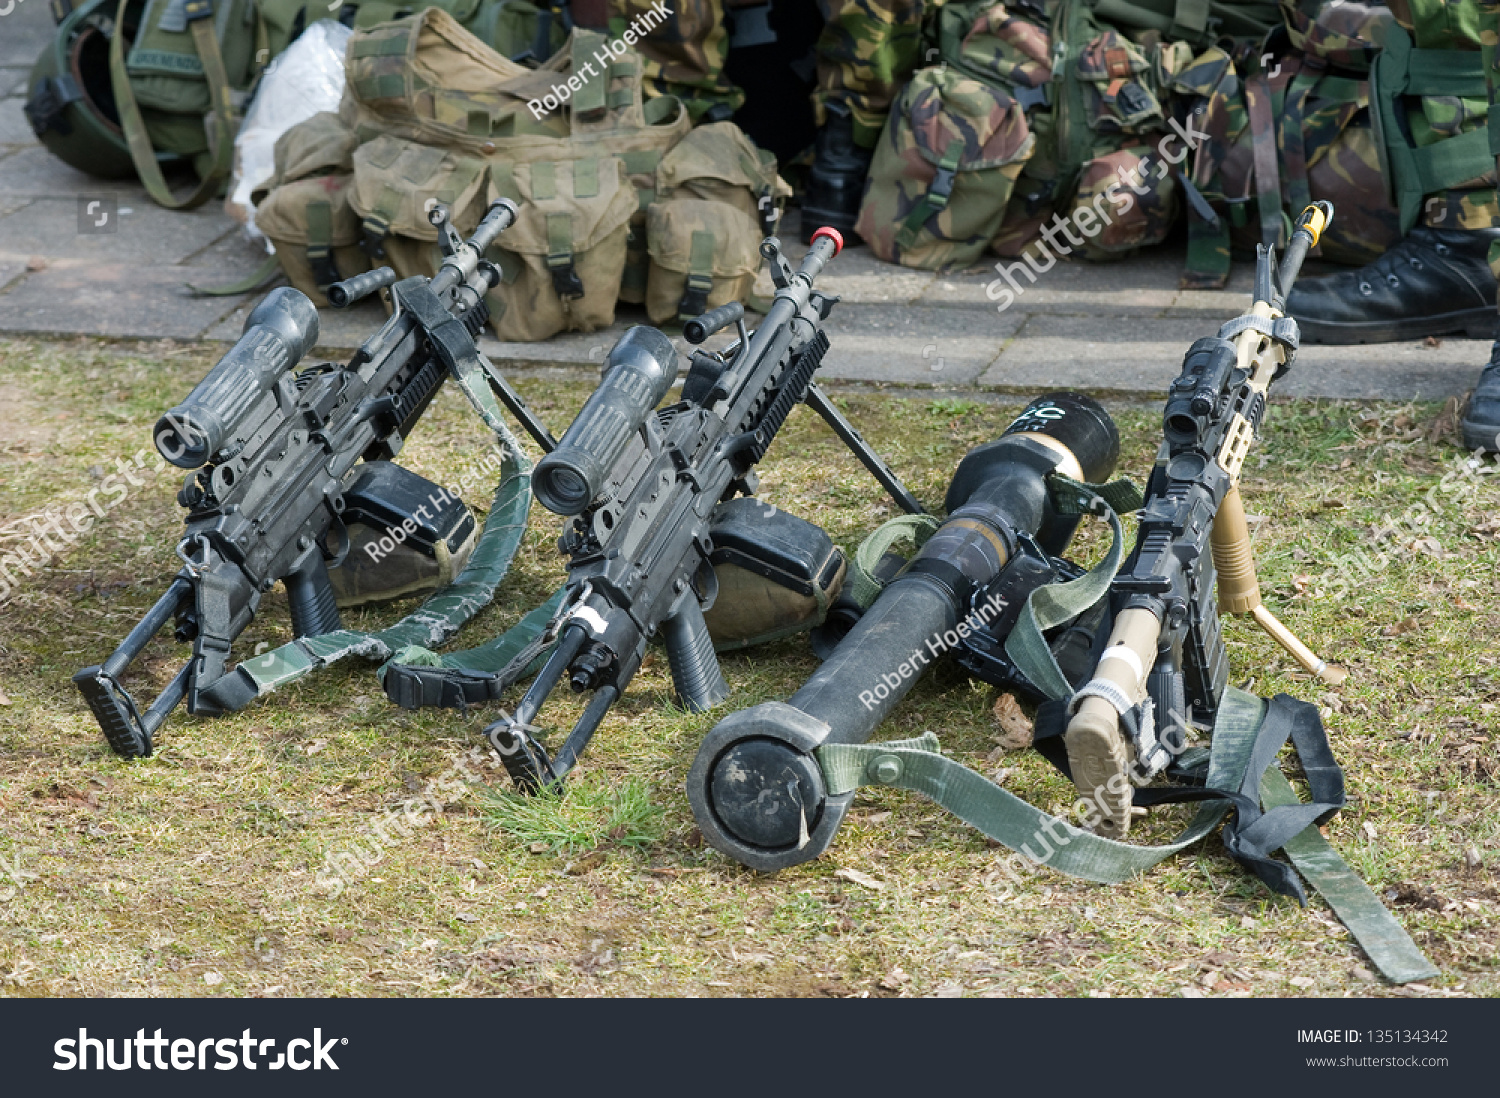 Automatic Weapons Standing On The Ground During A Briefing Of Special